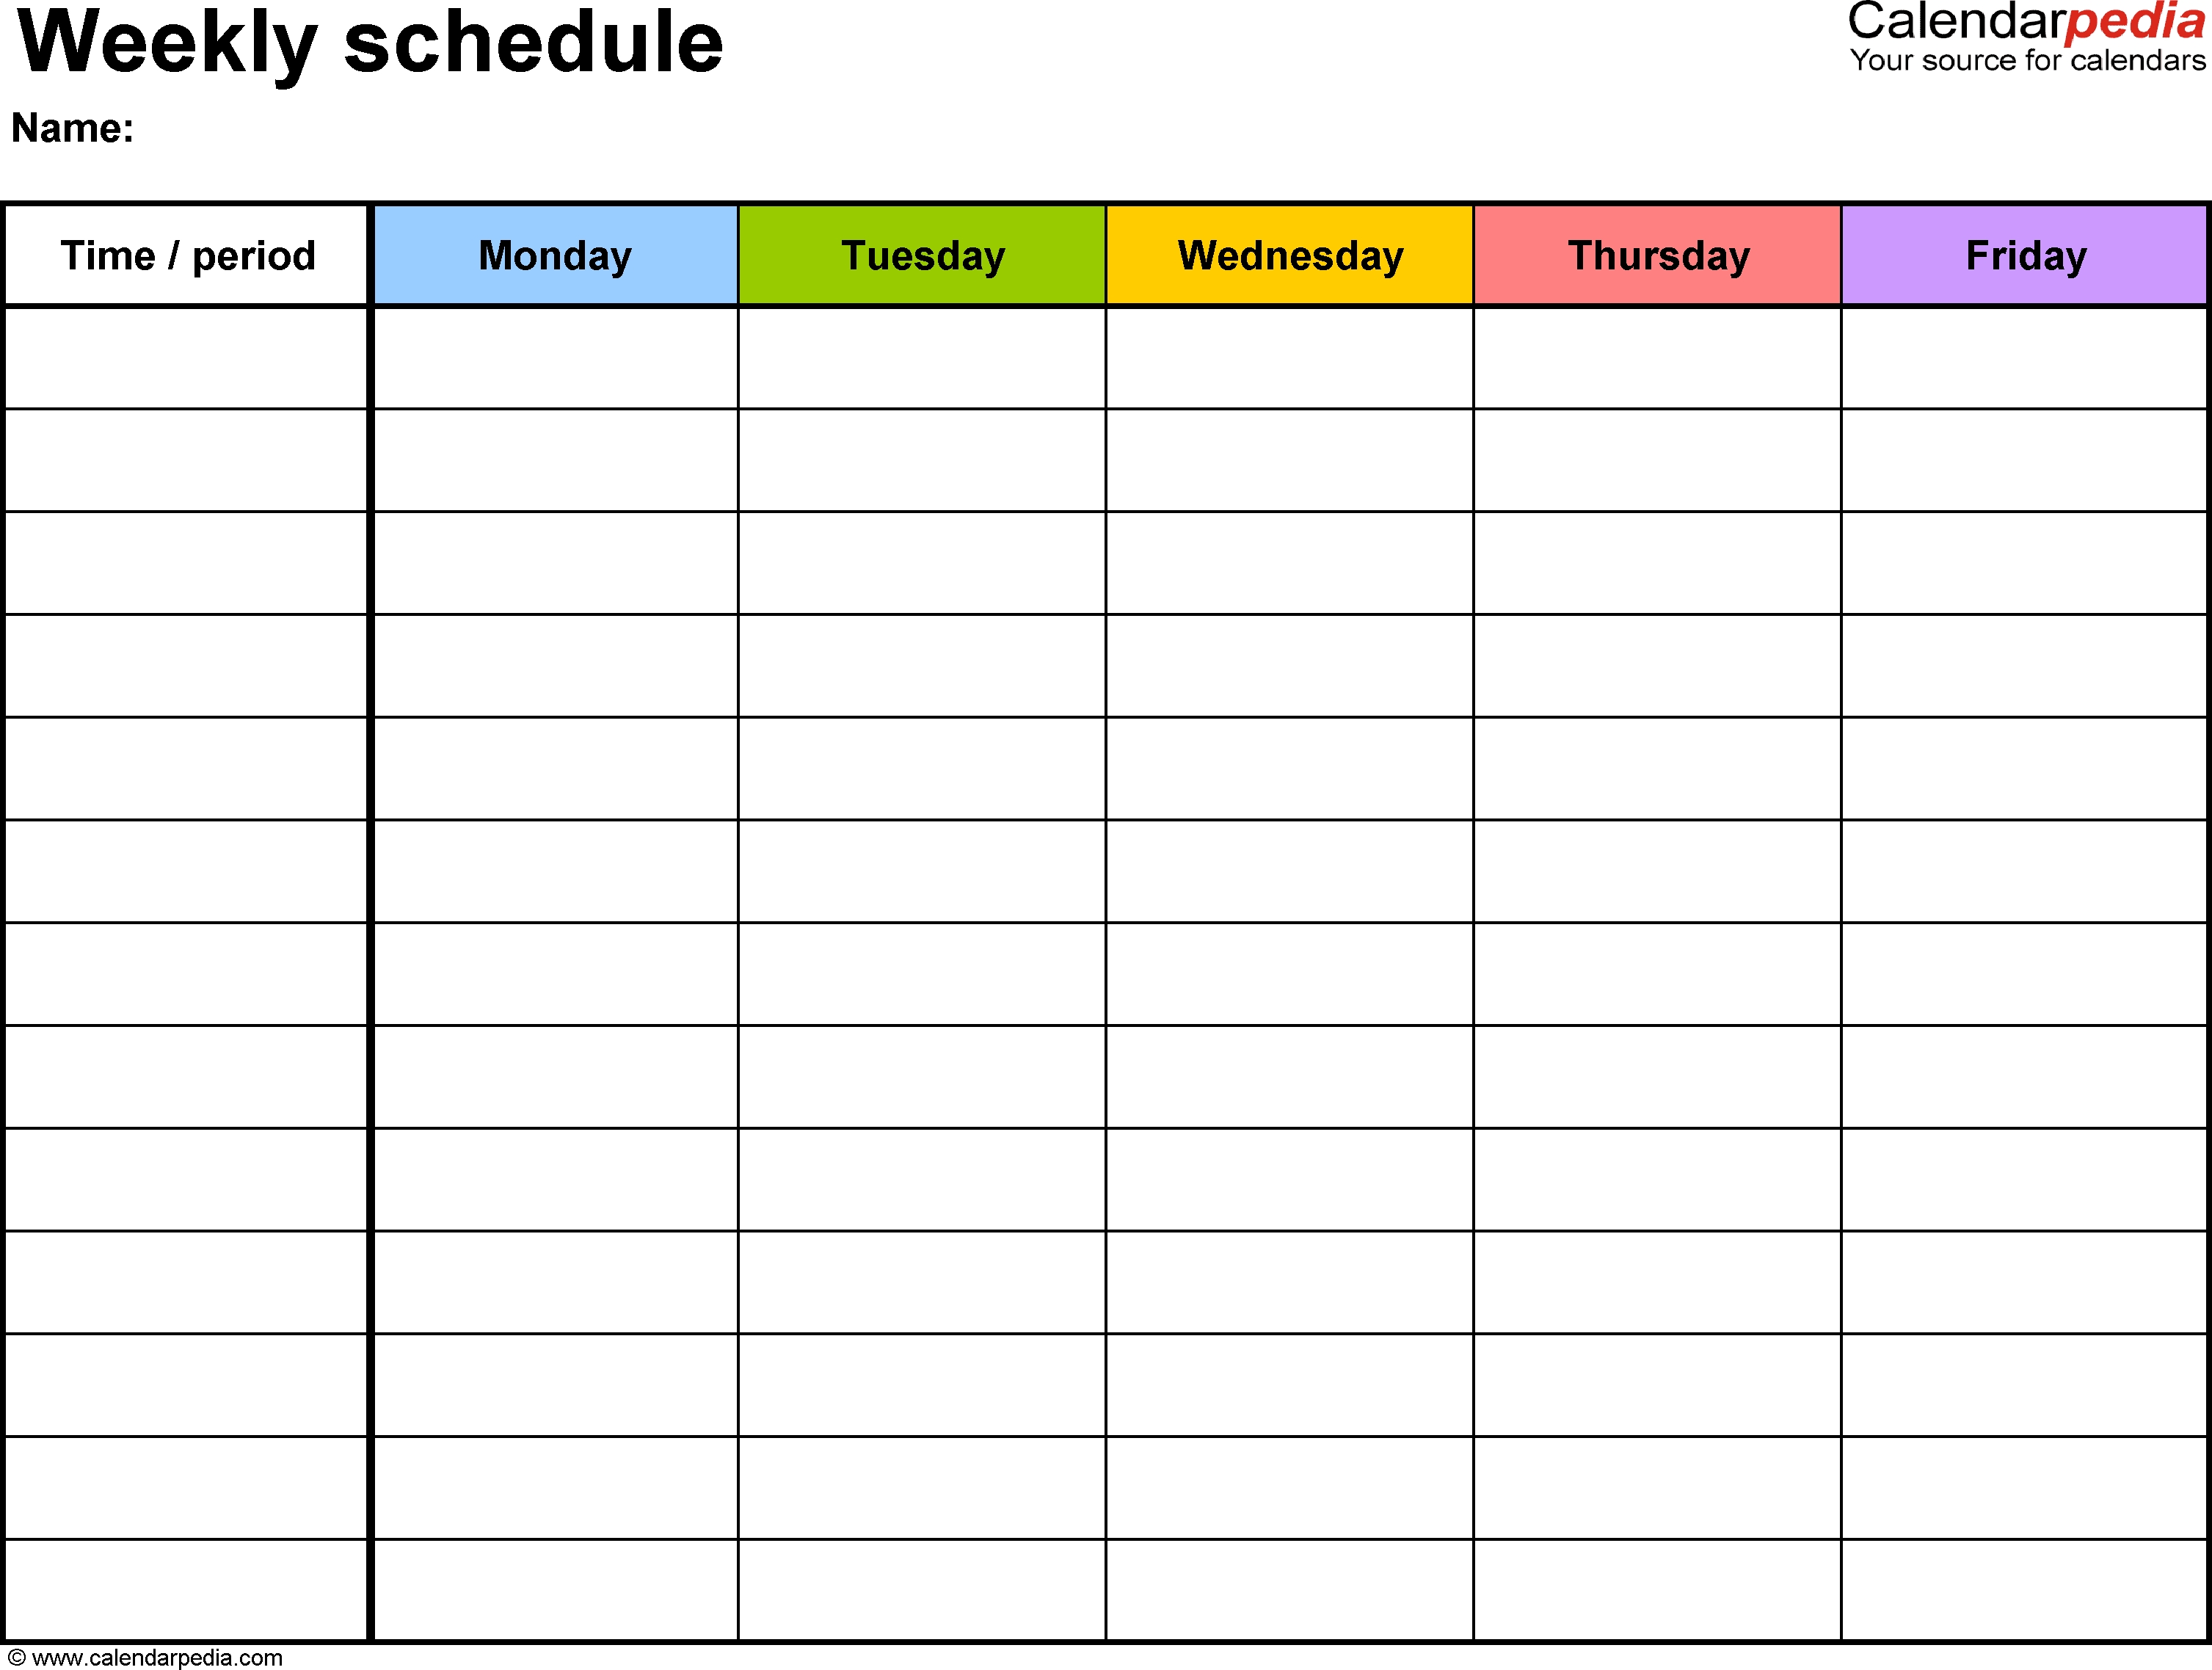 Free Weekly Schedule Templates For Word - 18 Templates pertaining to Weekly Schedule Monday - Sunday